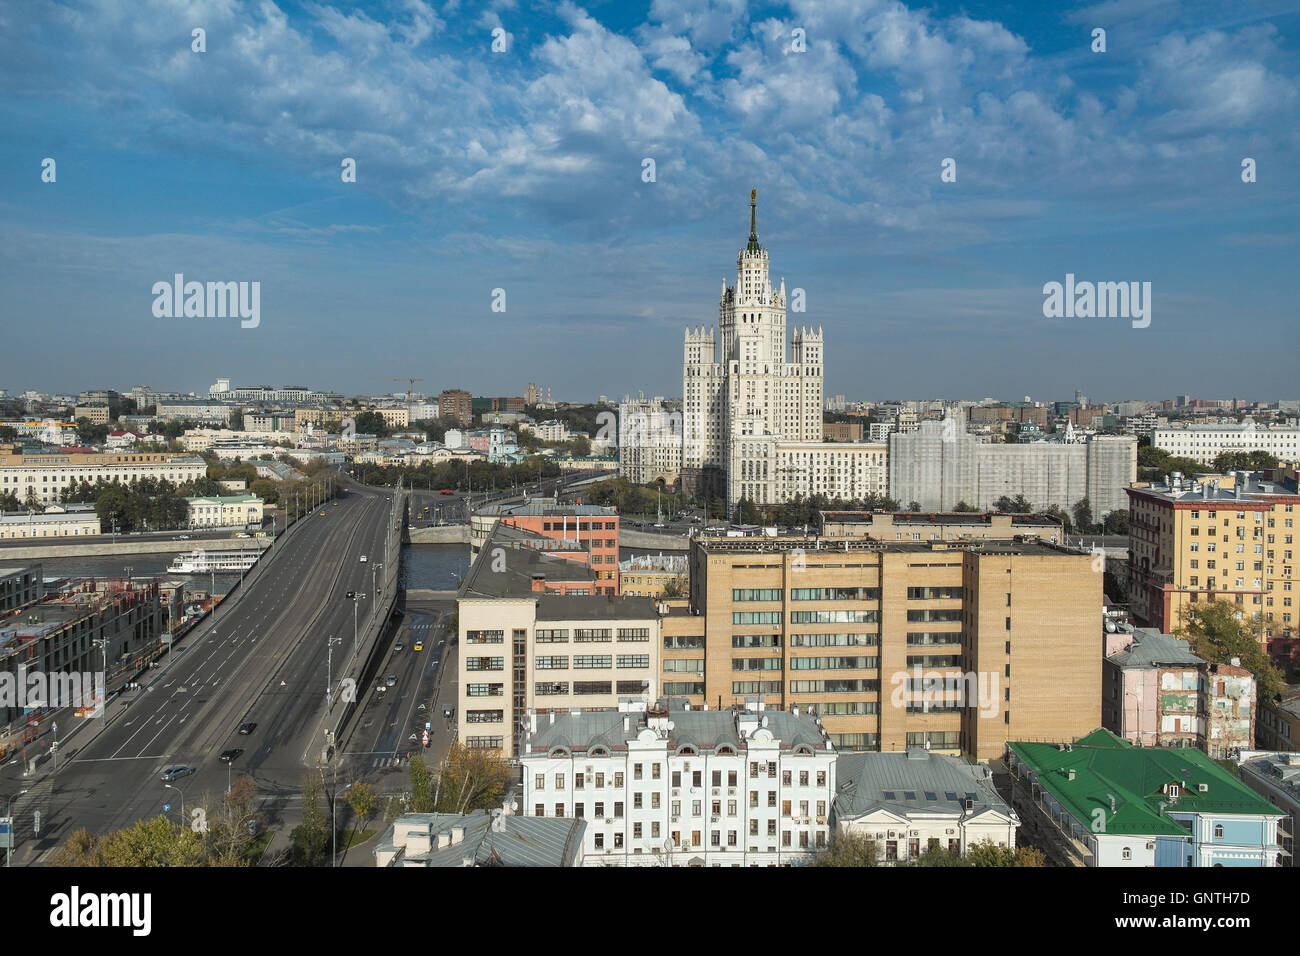 Stalin Skyscraper is one of Seven sister buildings of the Stalin Era in Moscow - Russia Stock Photo